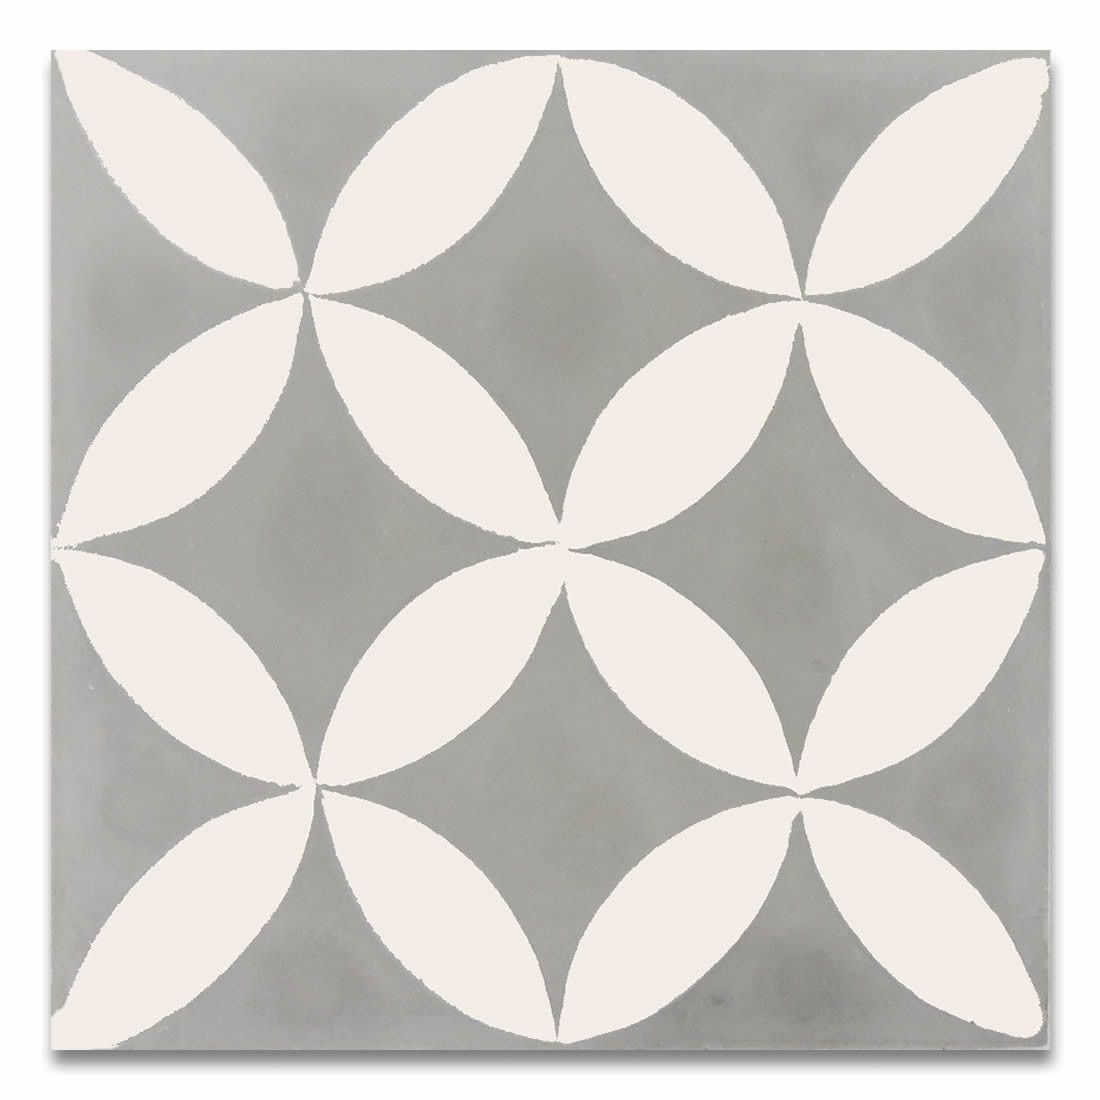 "Moroccan Mosaic Amlo 8"" x 8"" Handmade Cement Tile in White and Gray"